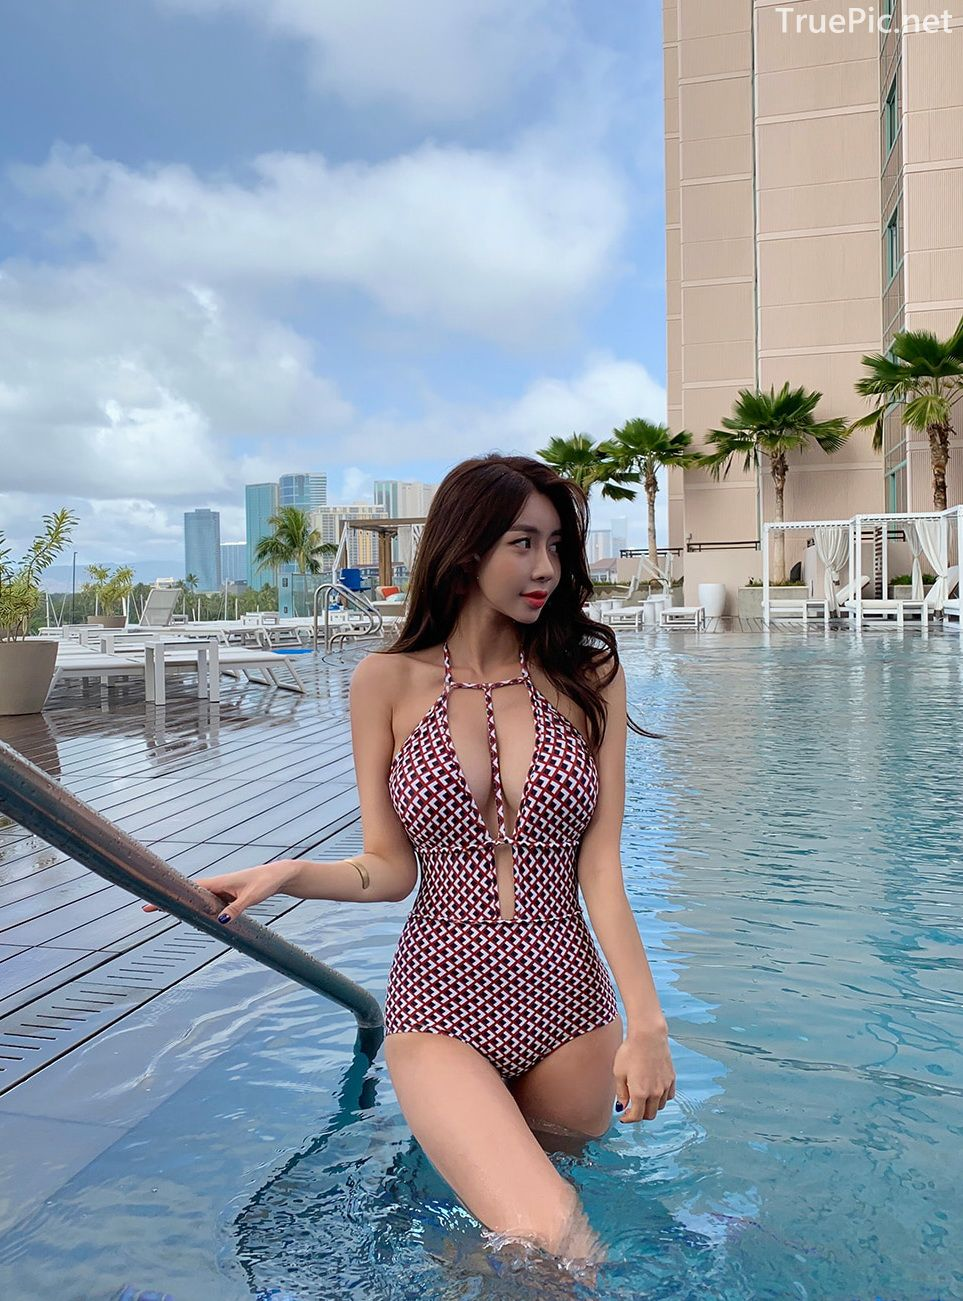 Korean hot fashion model - Kwon Byul - Swimsuit set Checkered Monokini